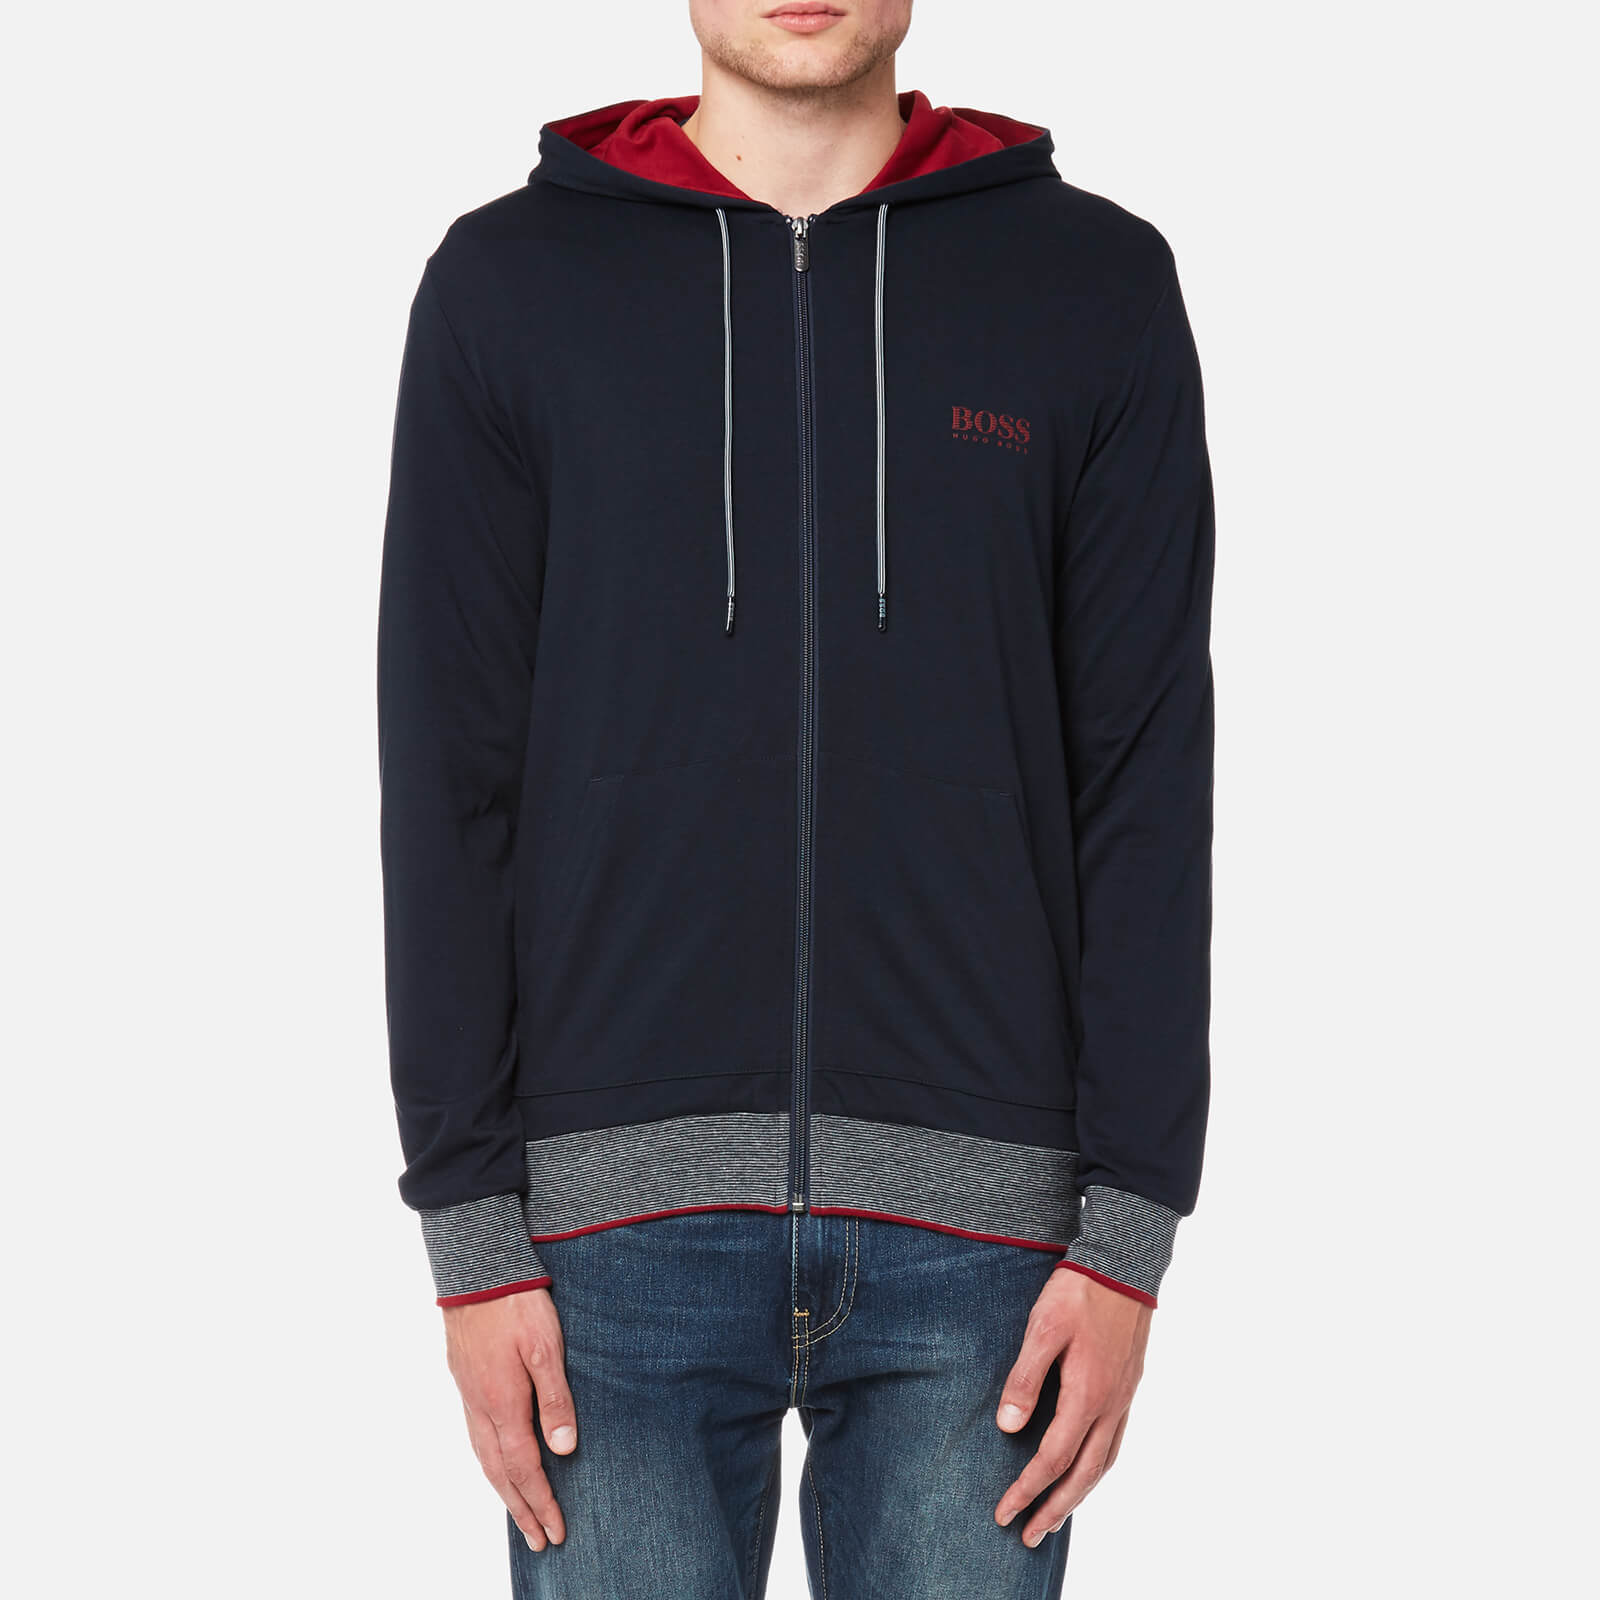 92b0864e8 BOSS Hugo Boss Men's Authentic Hooded Jacket - Dark Blue Clothing |  TheHut.com